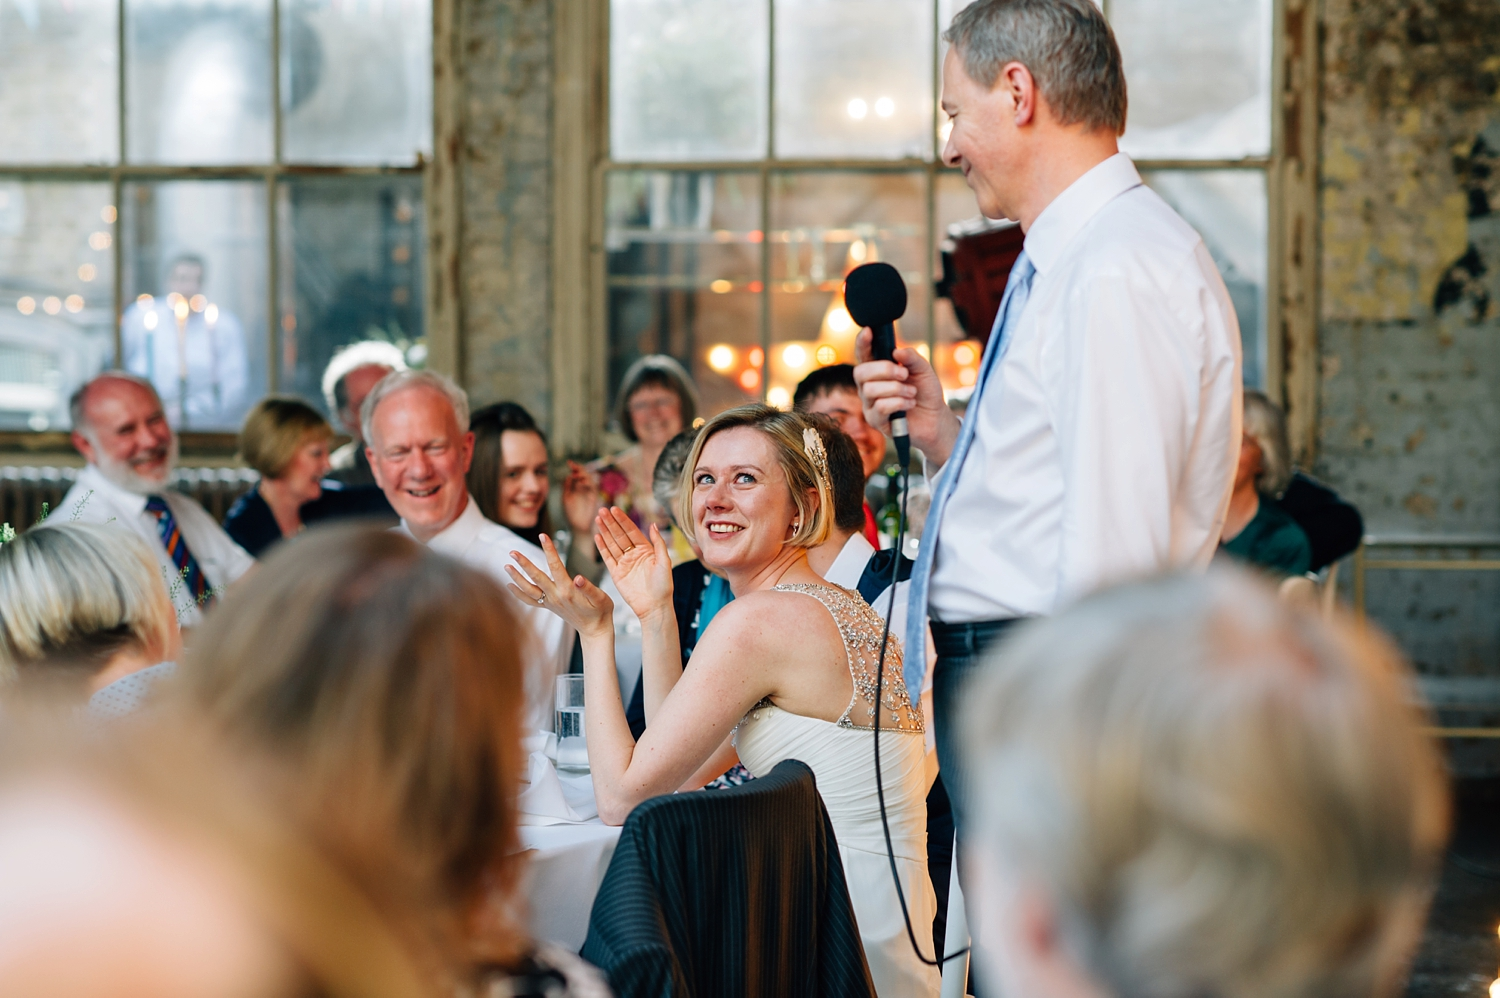 0154-lisa-devine-alternative-wedding-photography-london-hackney-dalston-london-photography-townhall-hotel.JPG